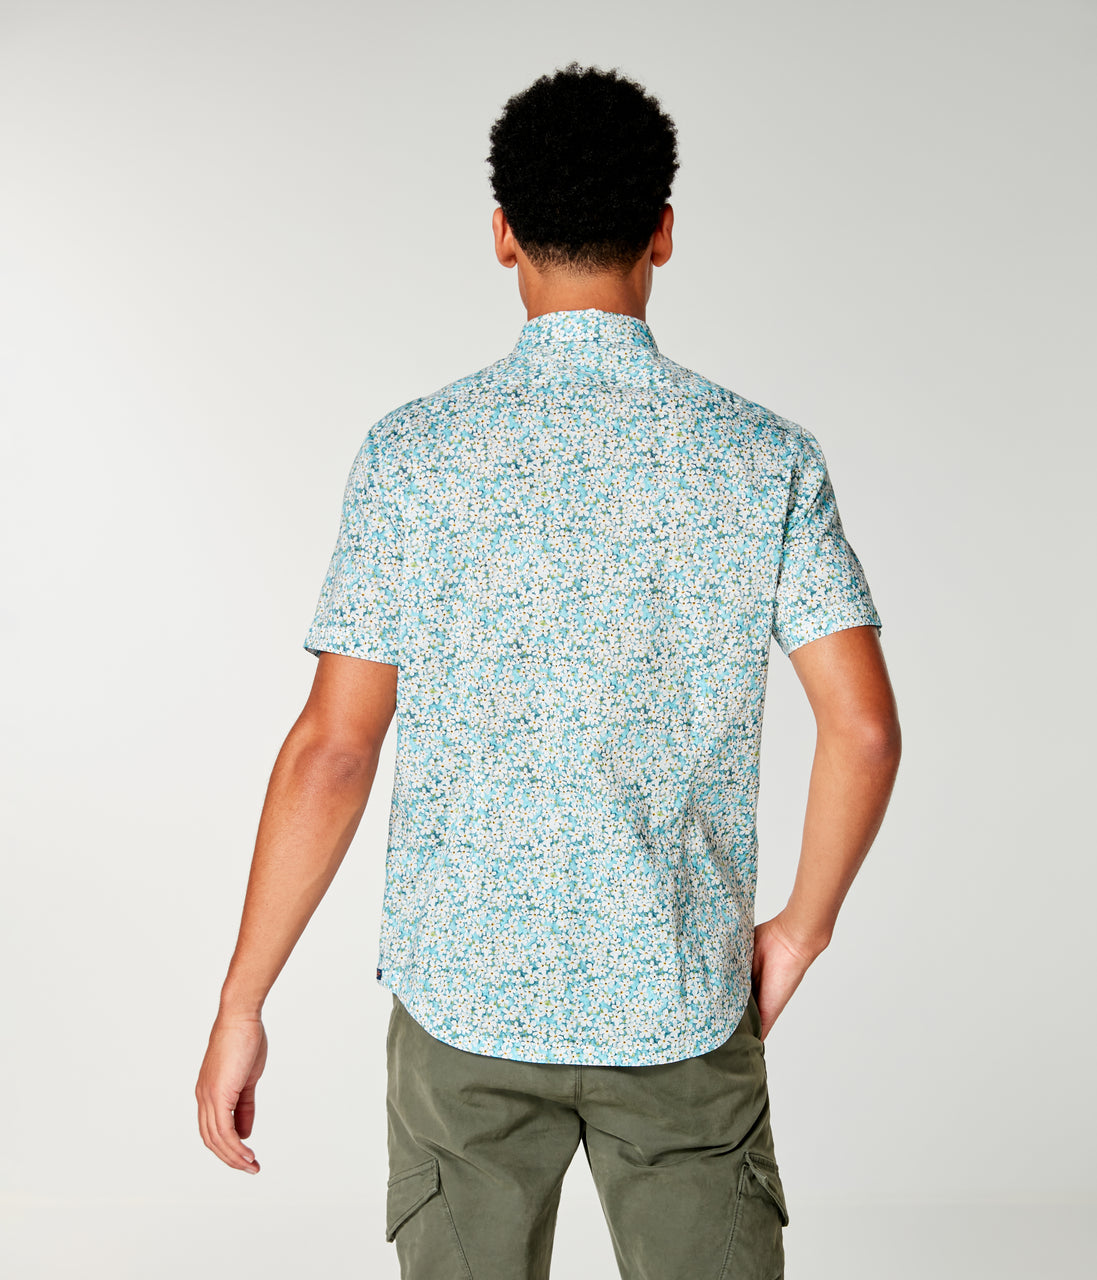 On-Point Print Shirt Short Sleeve - Blue Topaz Liberty Pond - Good Man Brand - On-Point Print Shirt Short Sleeve - Blue Topaz Liberty Pond